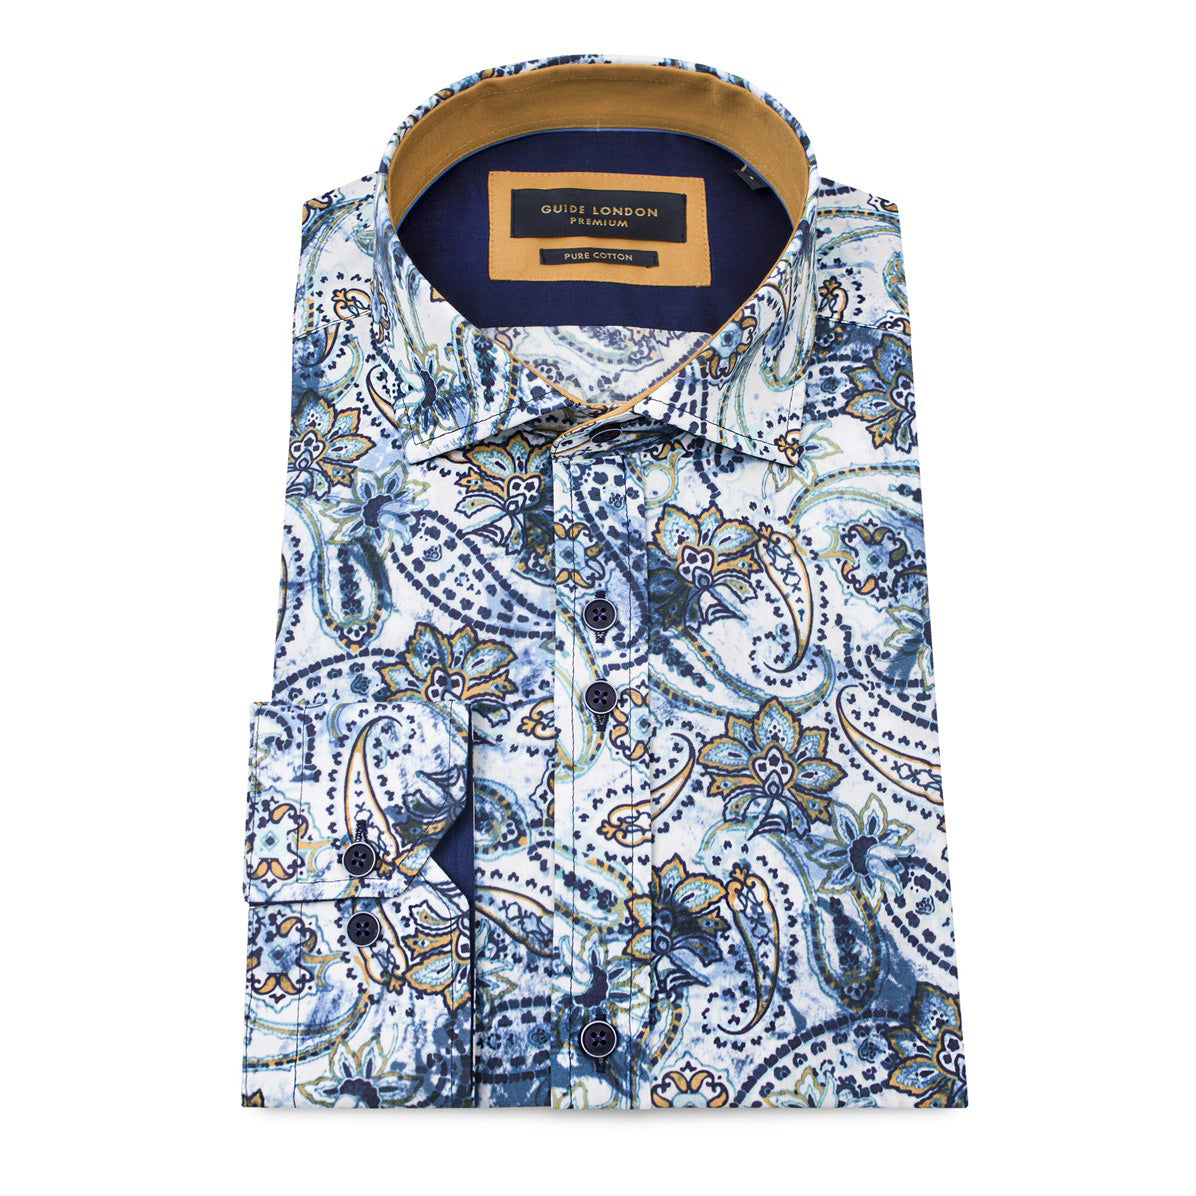 Guide London Multi Sateen Paisley Design Shirt LS74334